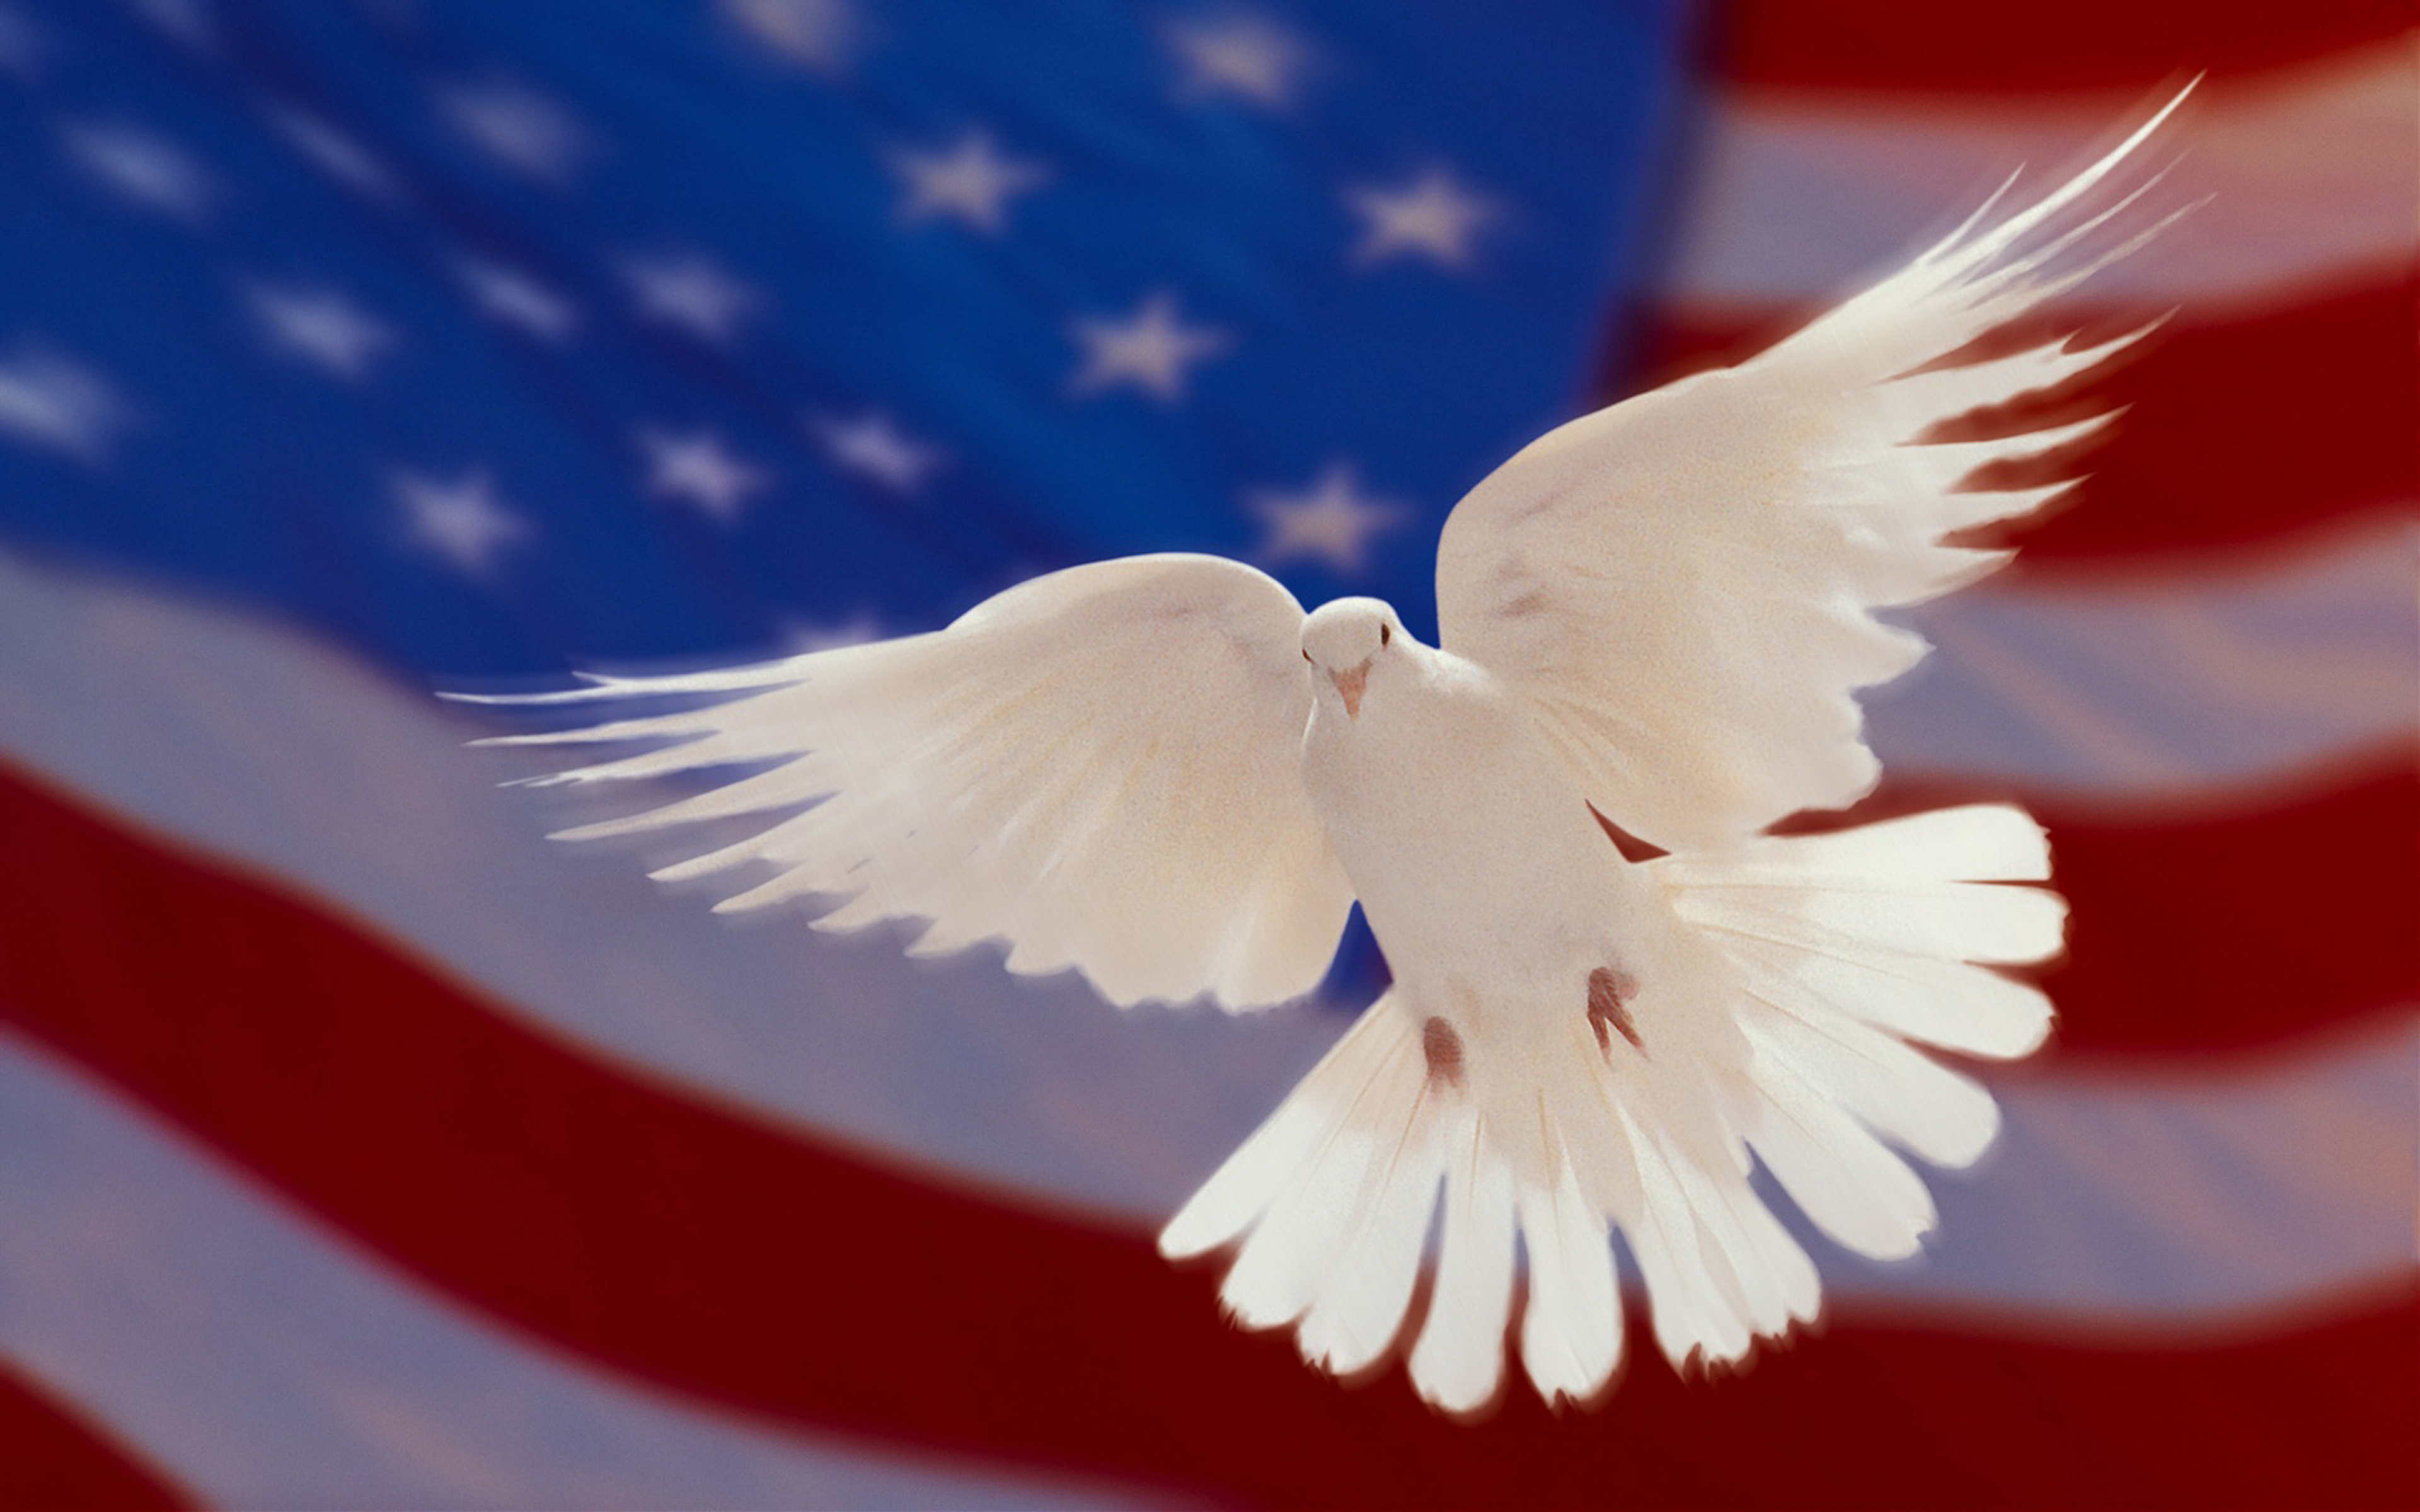 Wallpaper Black And White Flowers American Flag And White Dove Of Peace Hd Wallpapers For